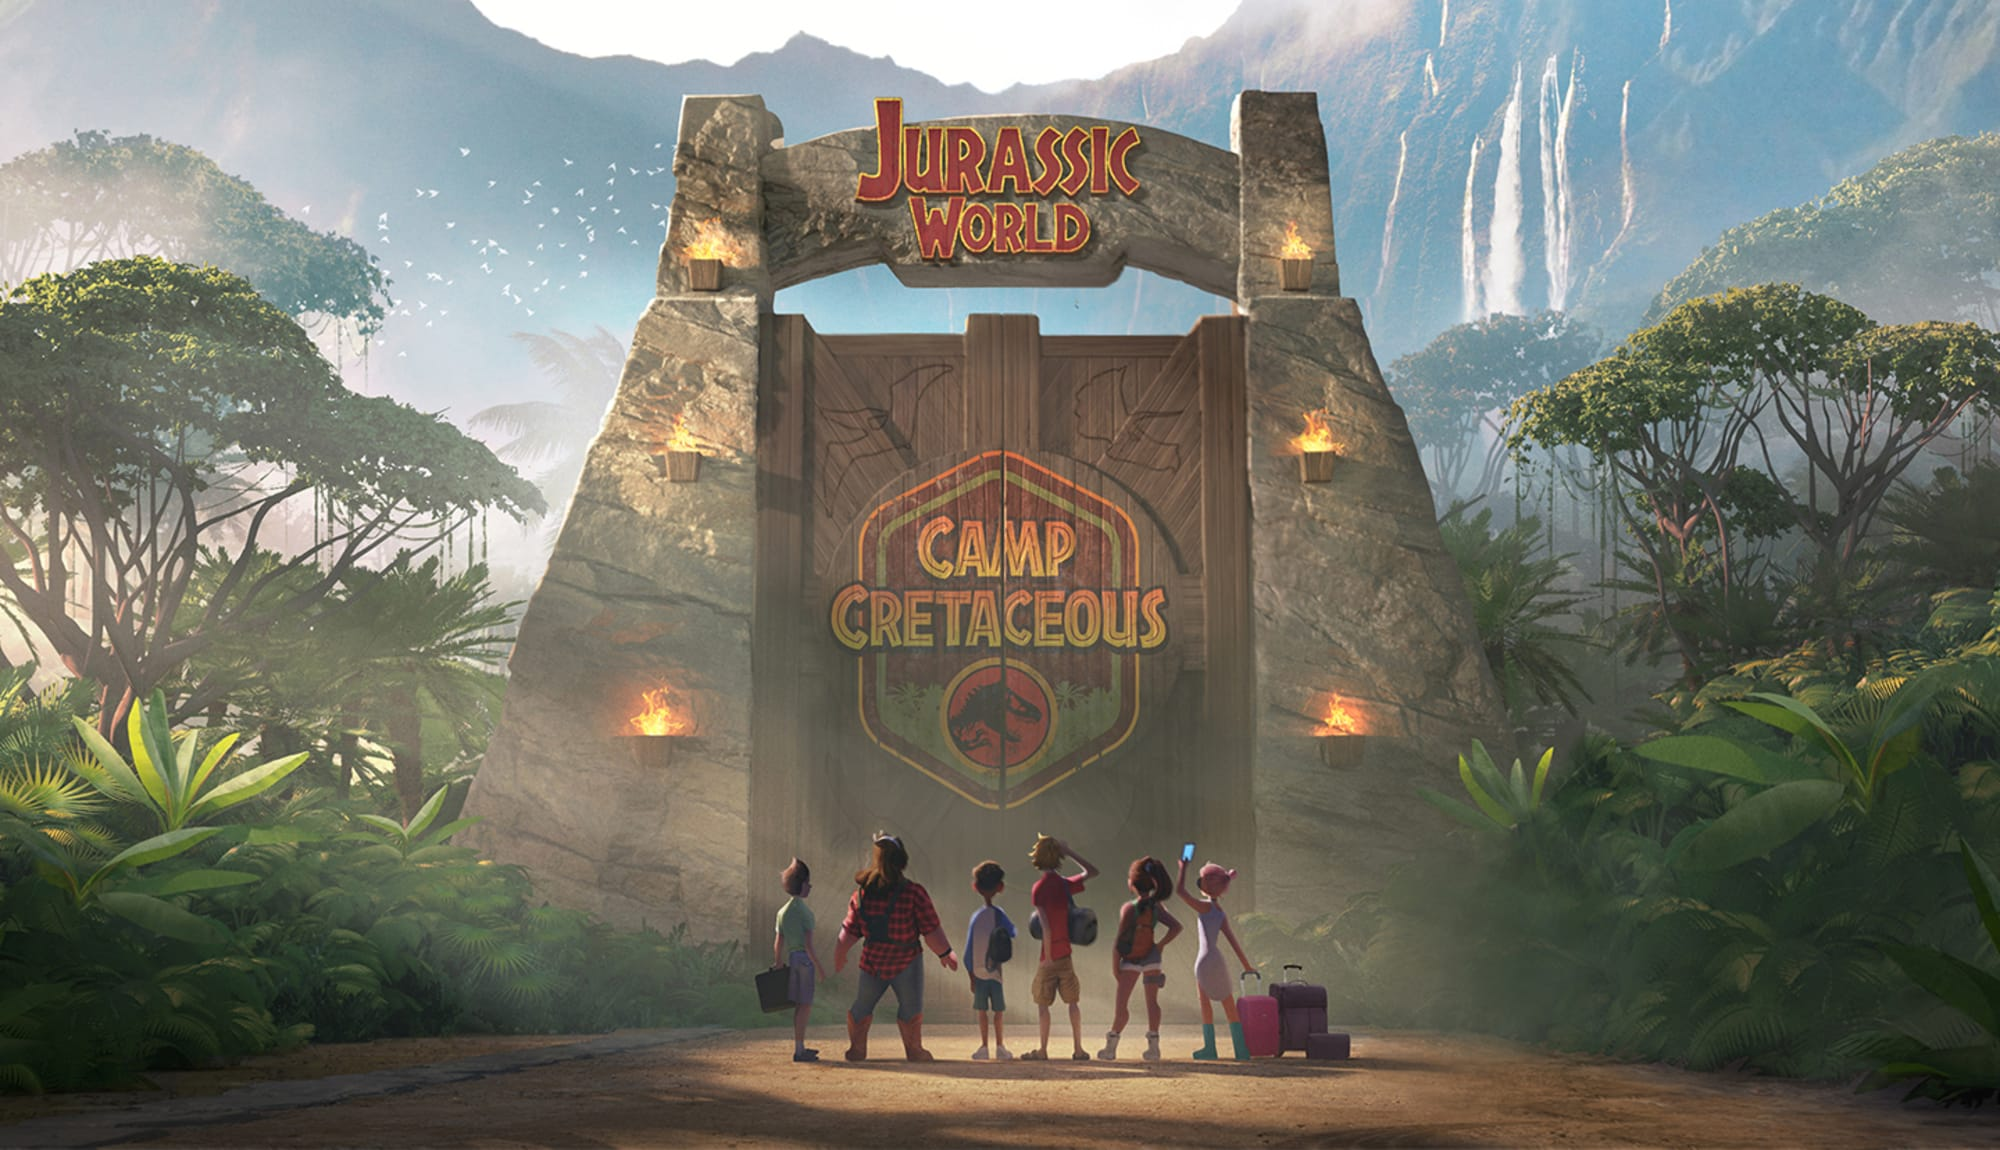 What is Jurassic World: Camp Cretaceous season 3 on Netflix about?